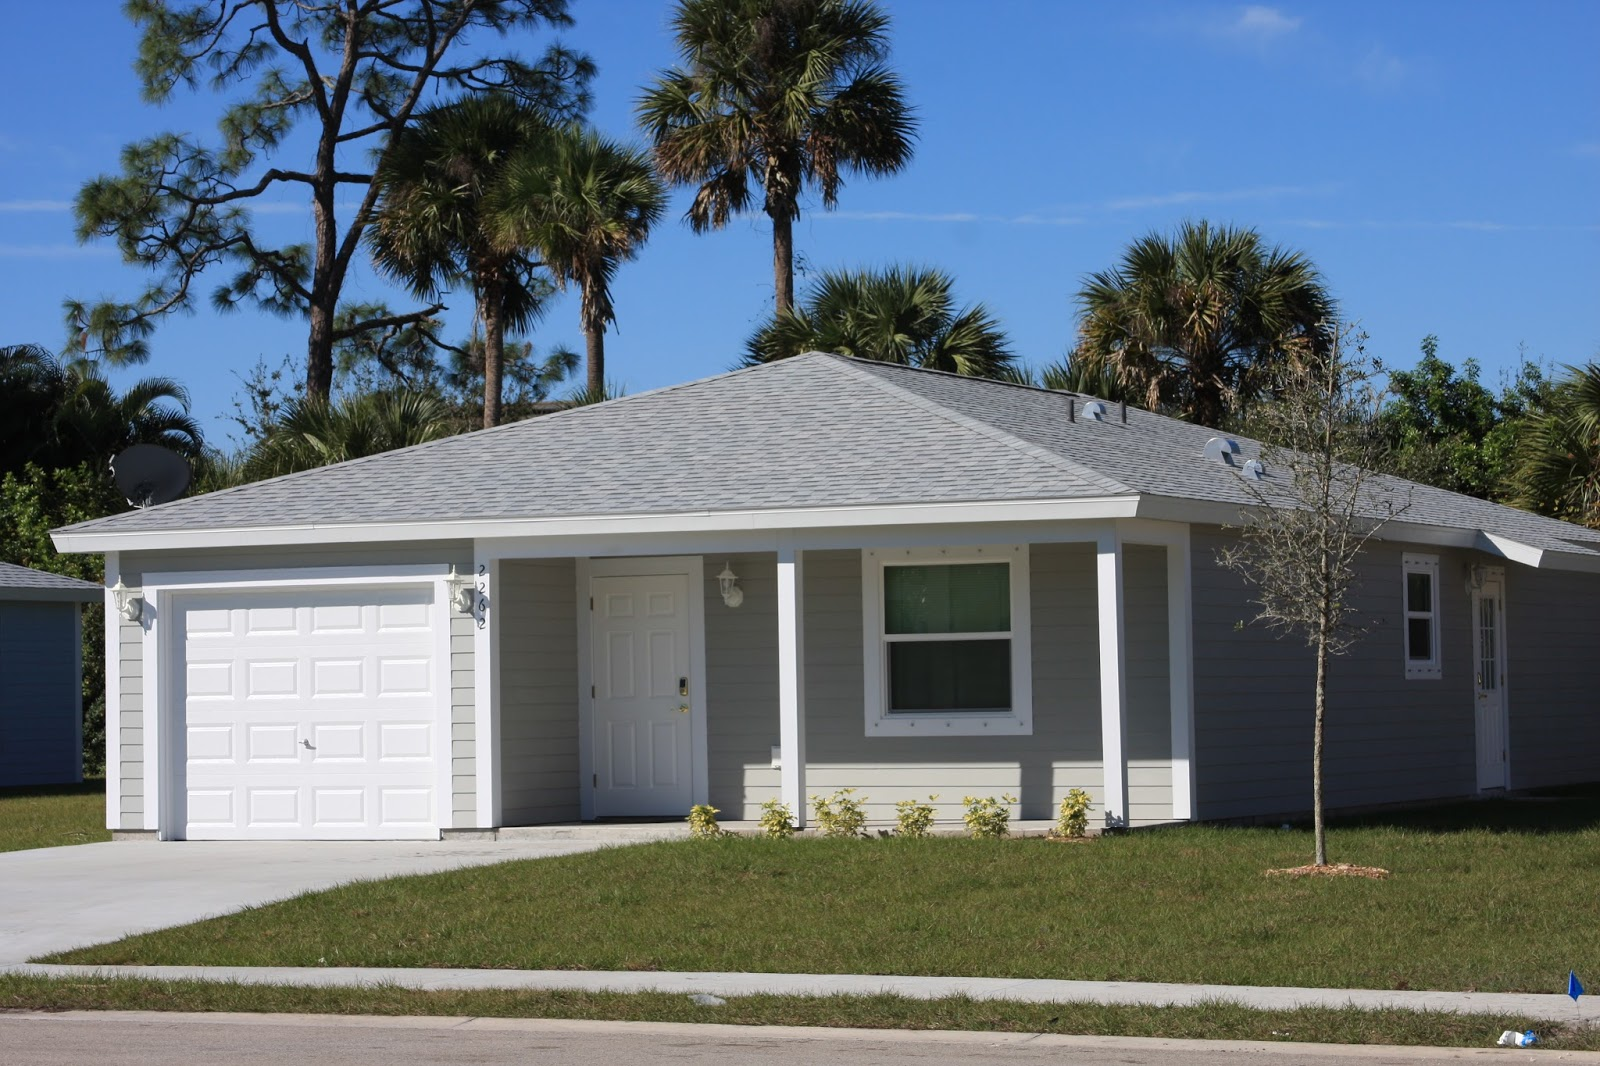 Habitat for humanity houses florida house plan 2017 for Building a house in florida